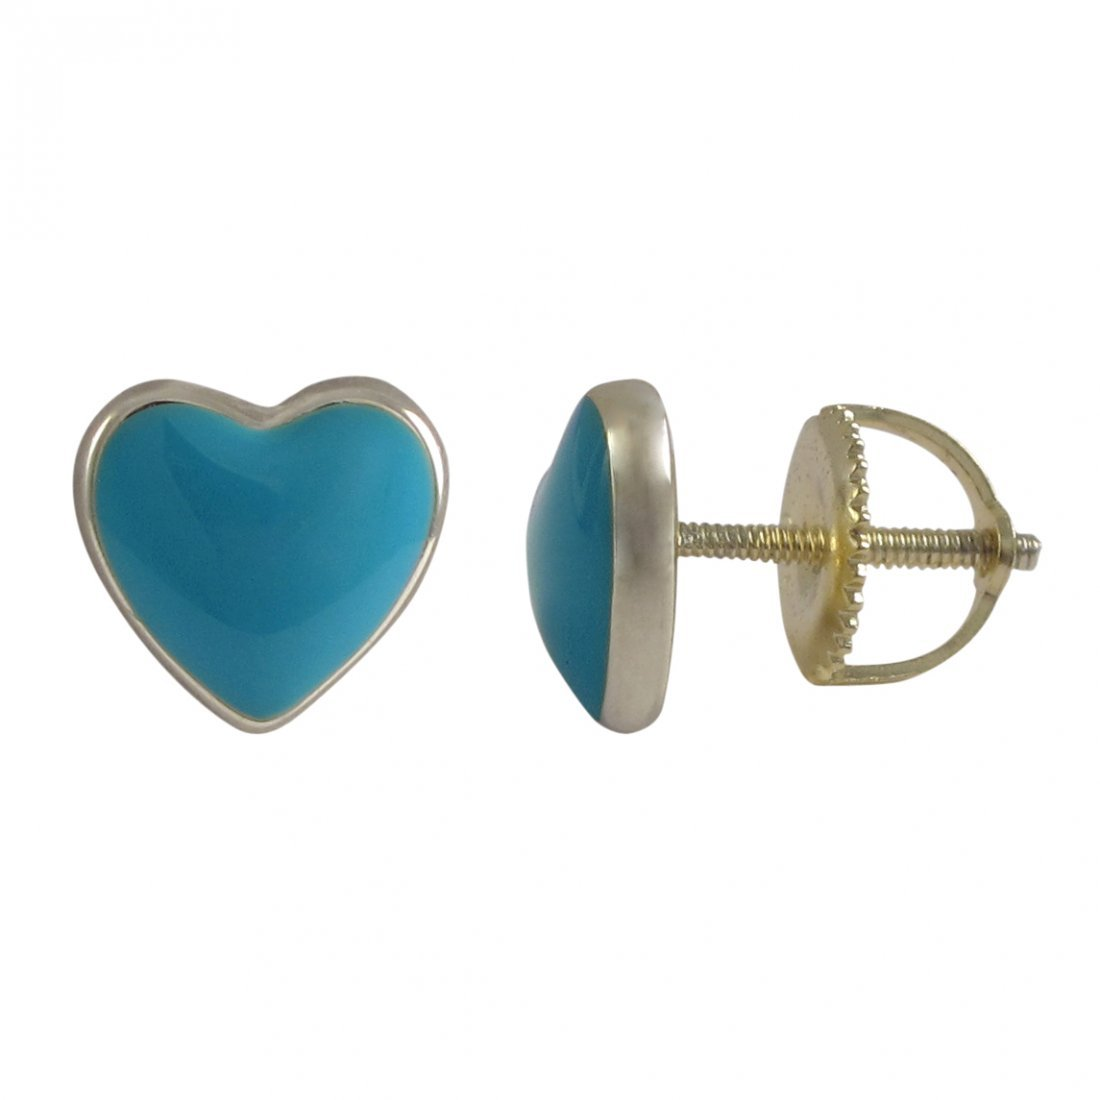 Turquoise Enamel 7x8mm Heart Stud, Gold Plated Sterling